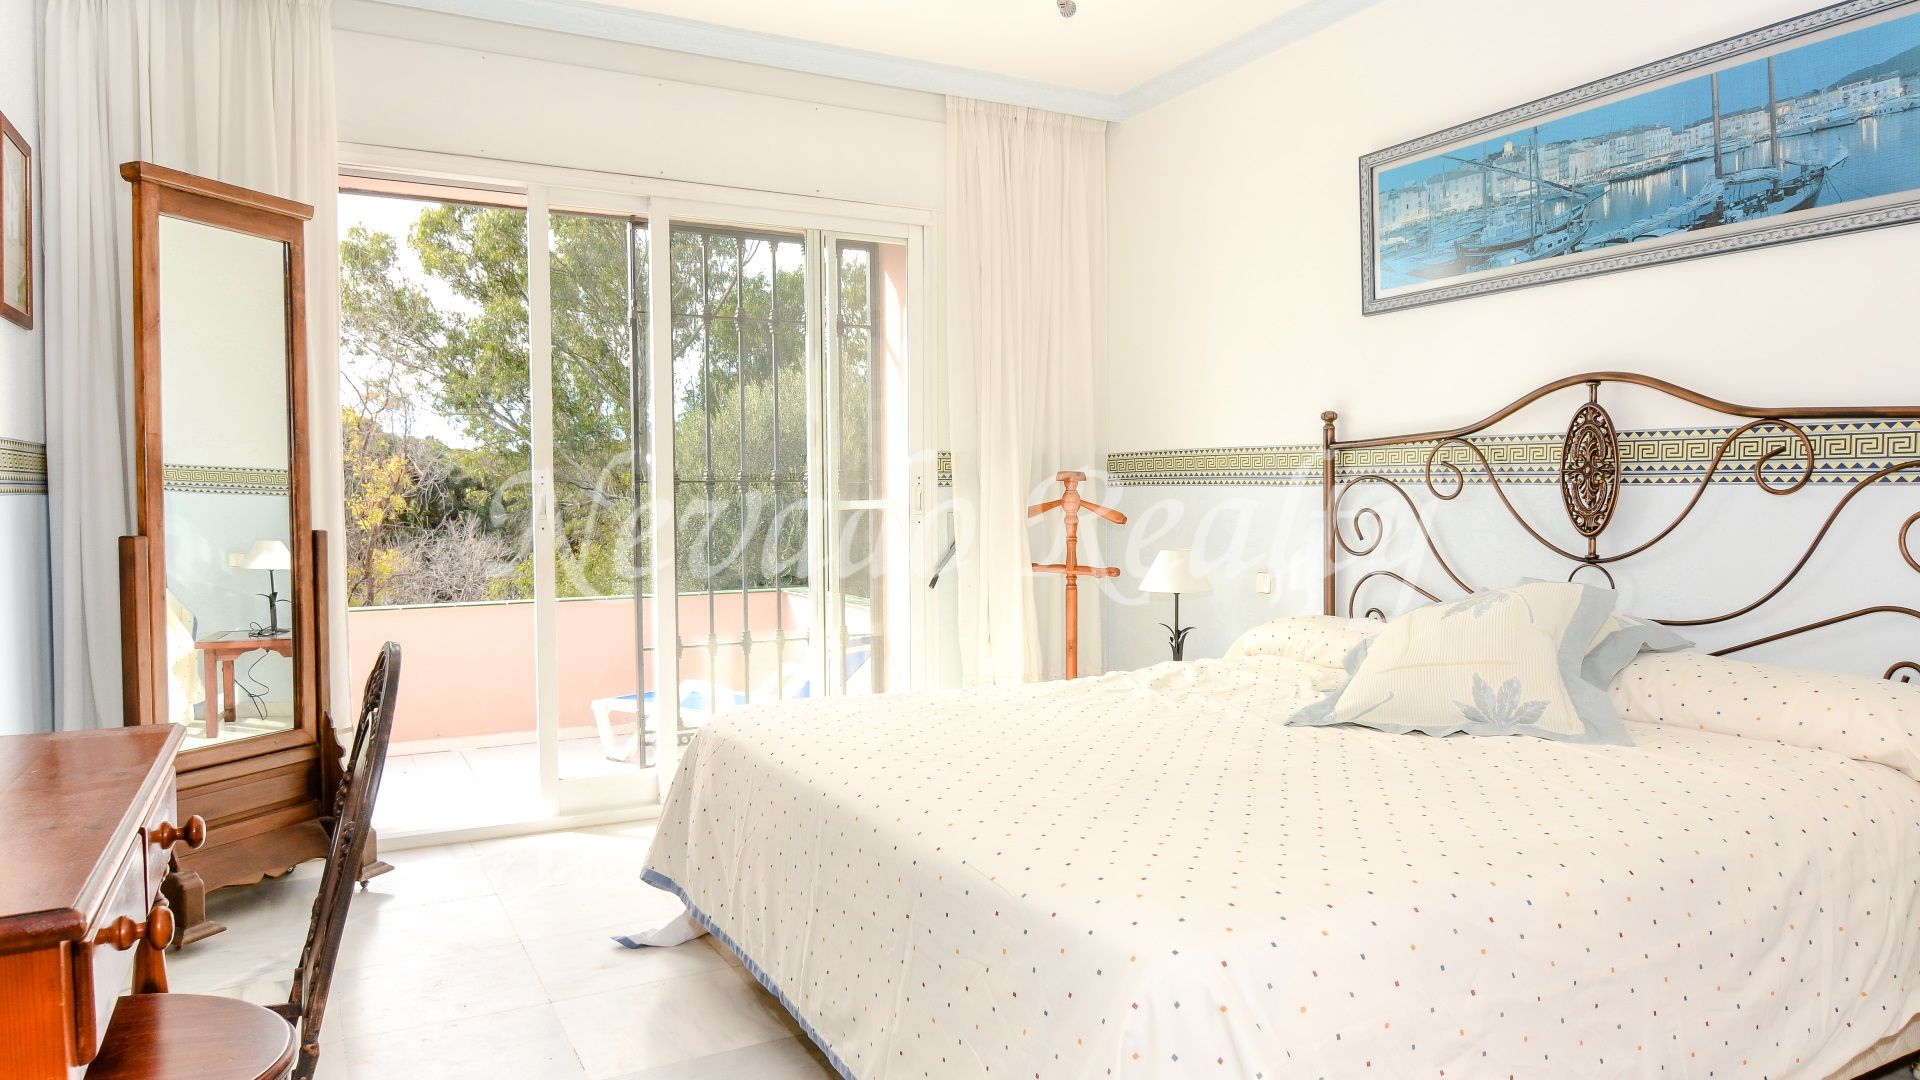 Special! Villa with private pool just steps from the historic center of Marbella